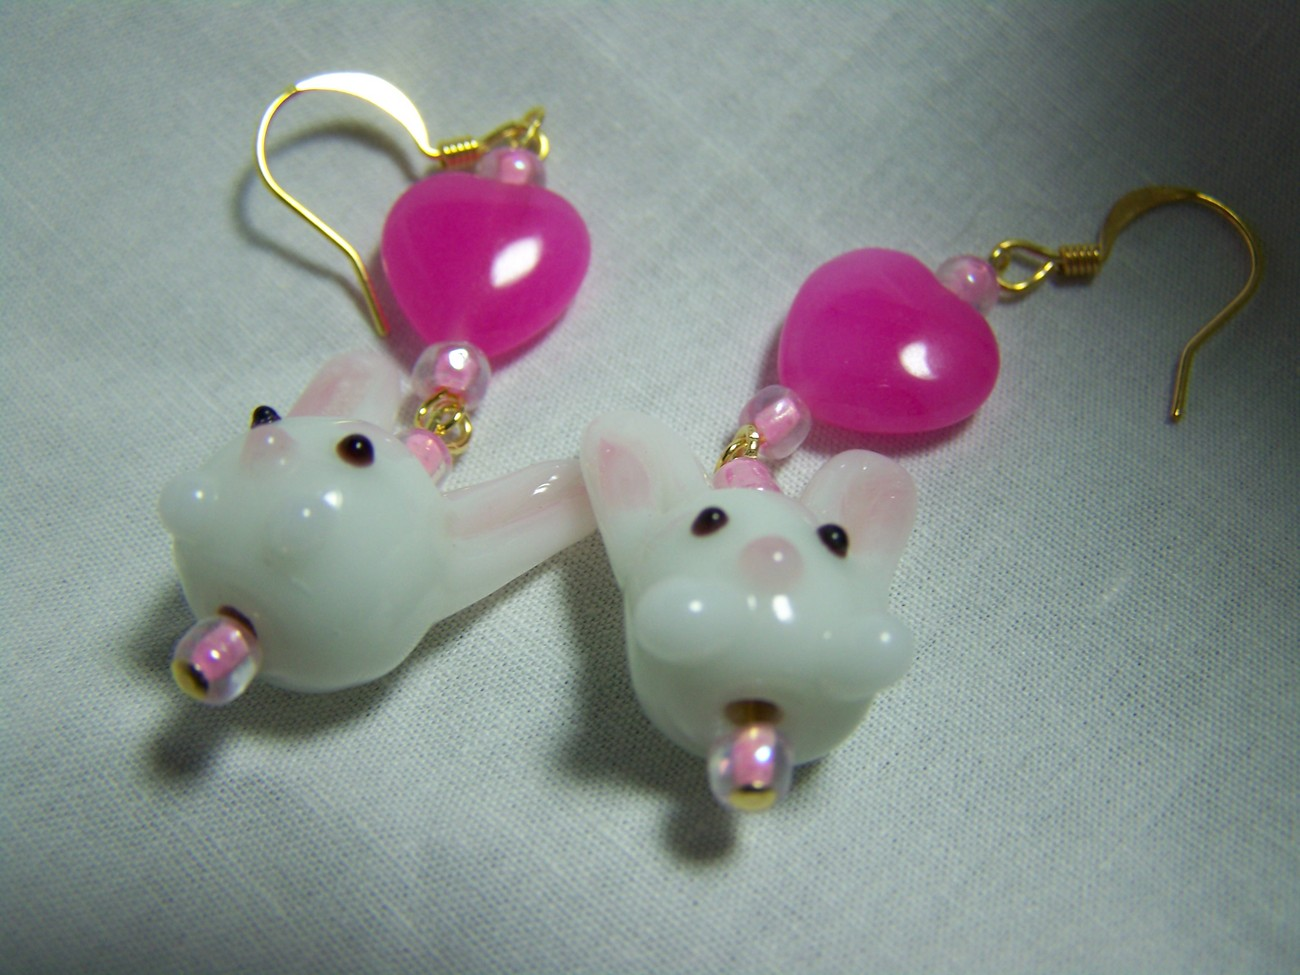 Bunny pink heart lampwork glass 2 1/4 inch gold earrings